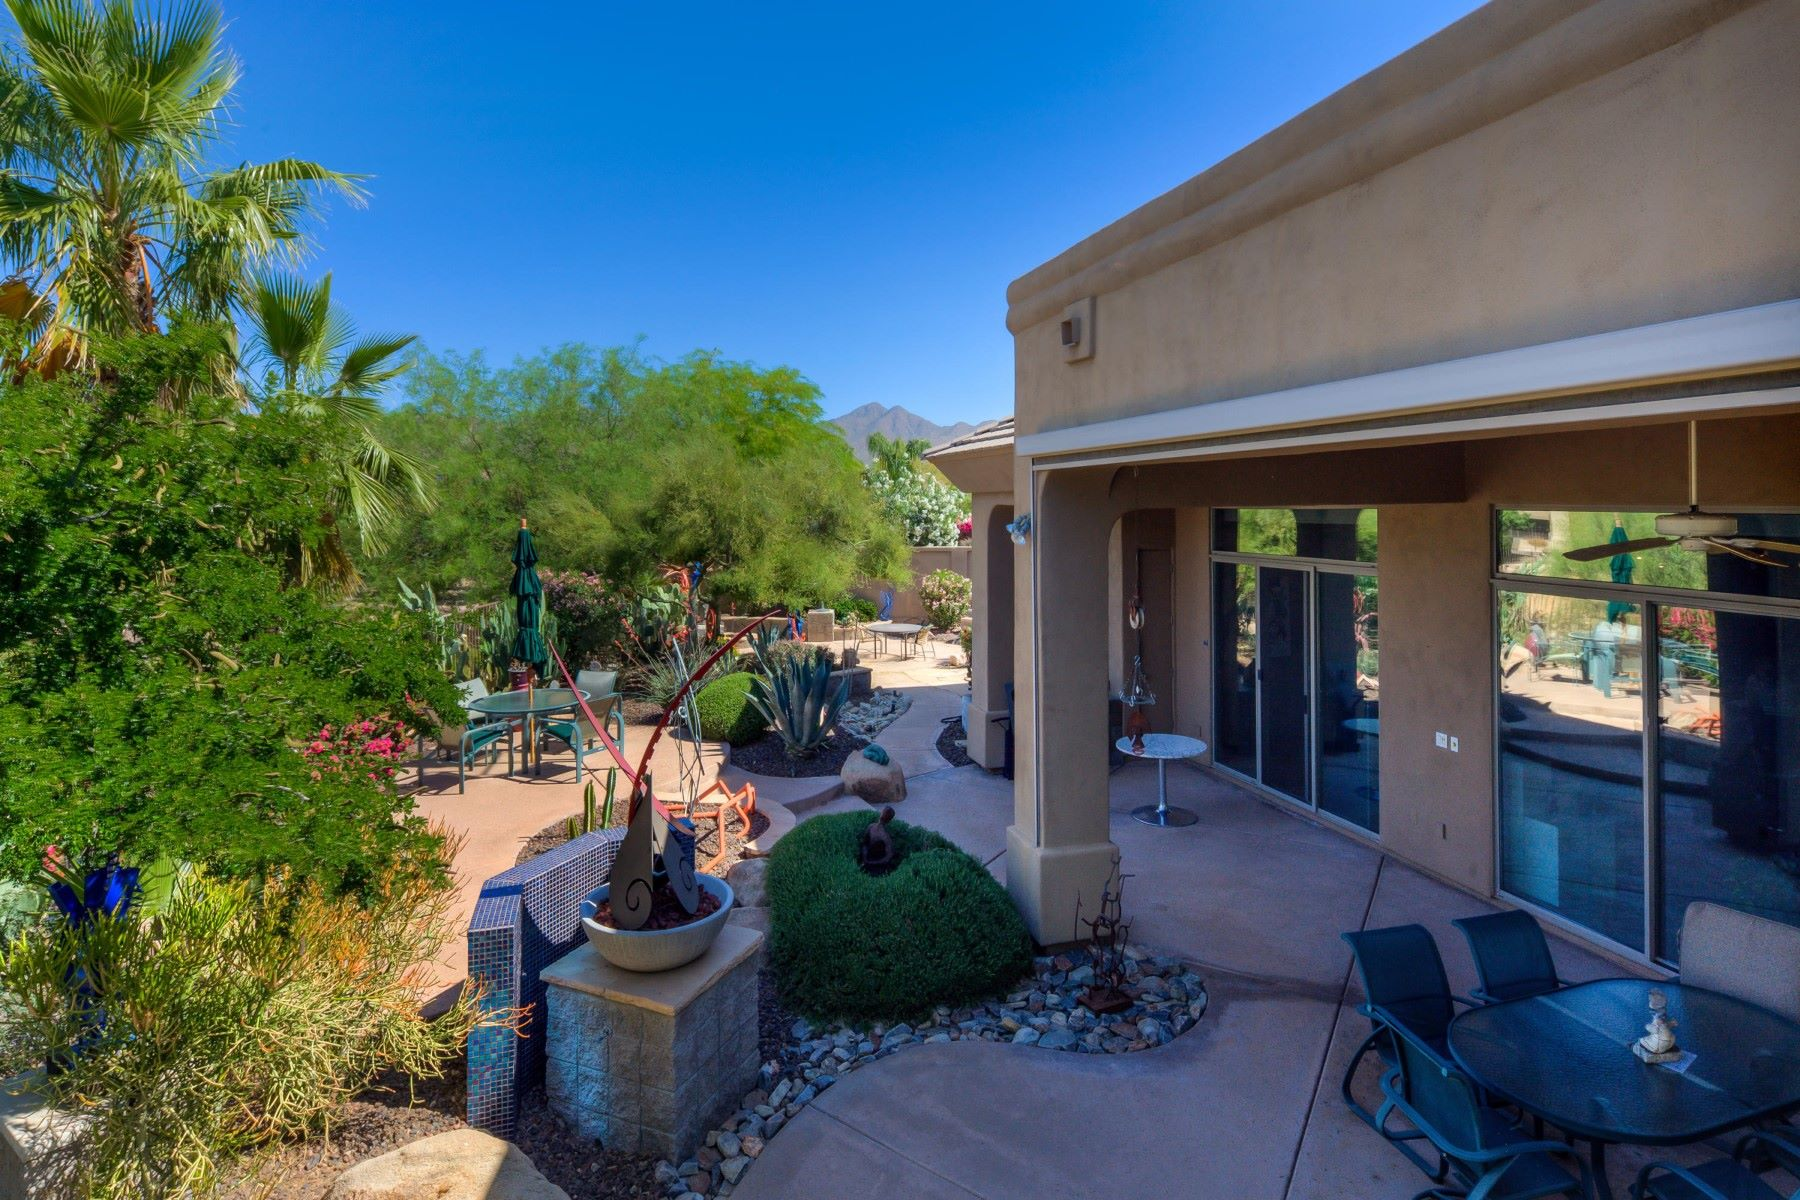 Single Family Home for Sale at Great home nestled in the Regal at Stonegate 11640 E Arabian Park Dr Scottsdale, Arizona, 85259 United States